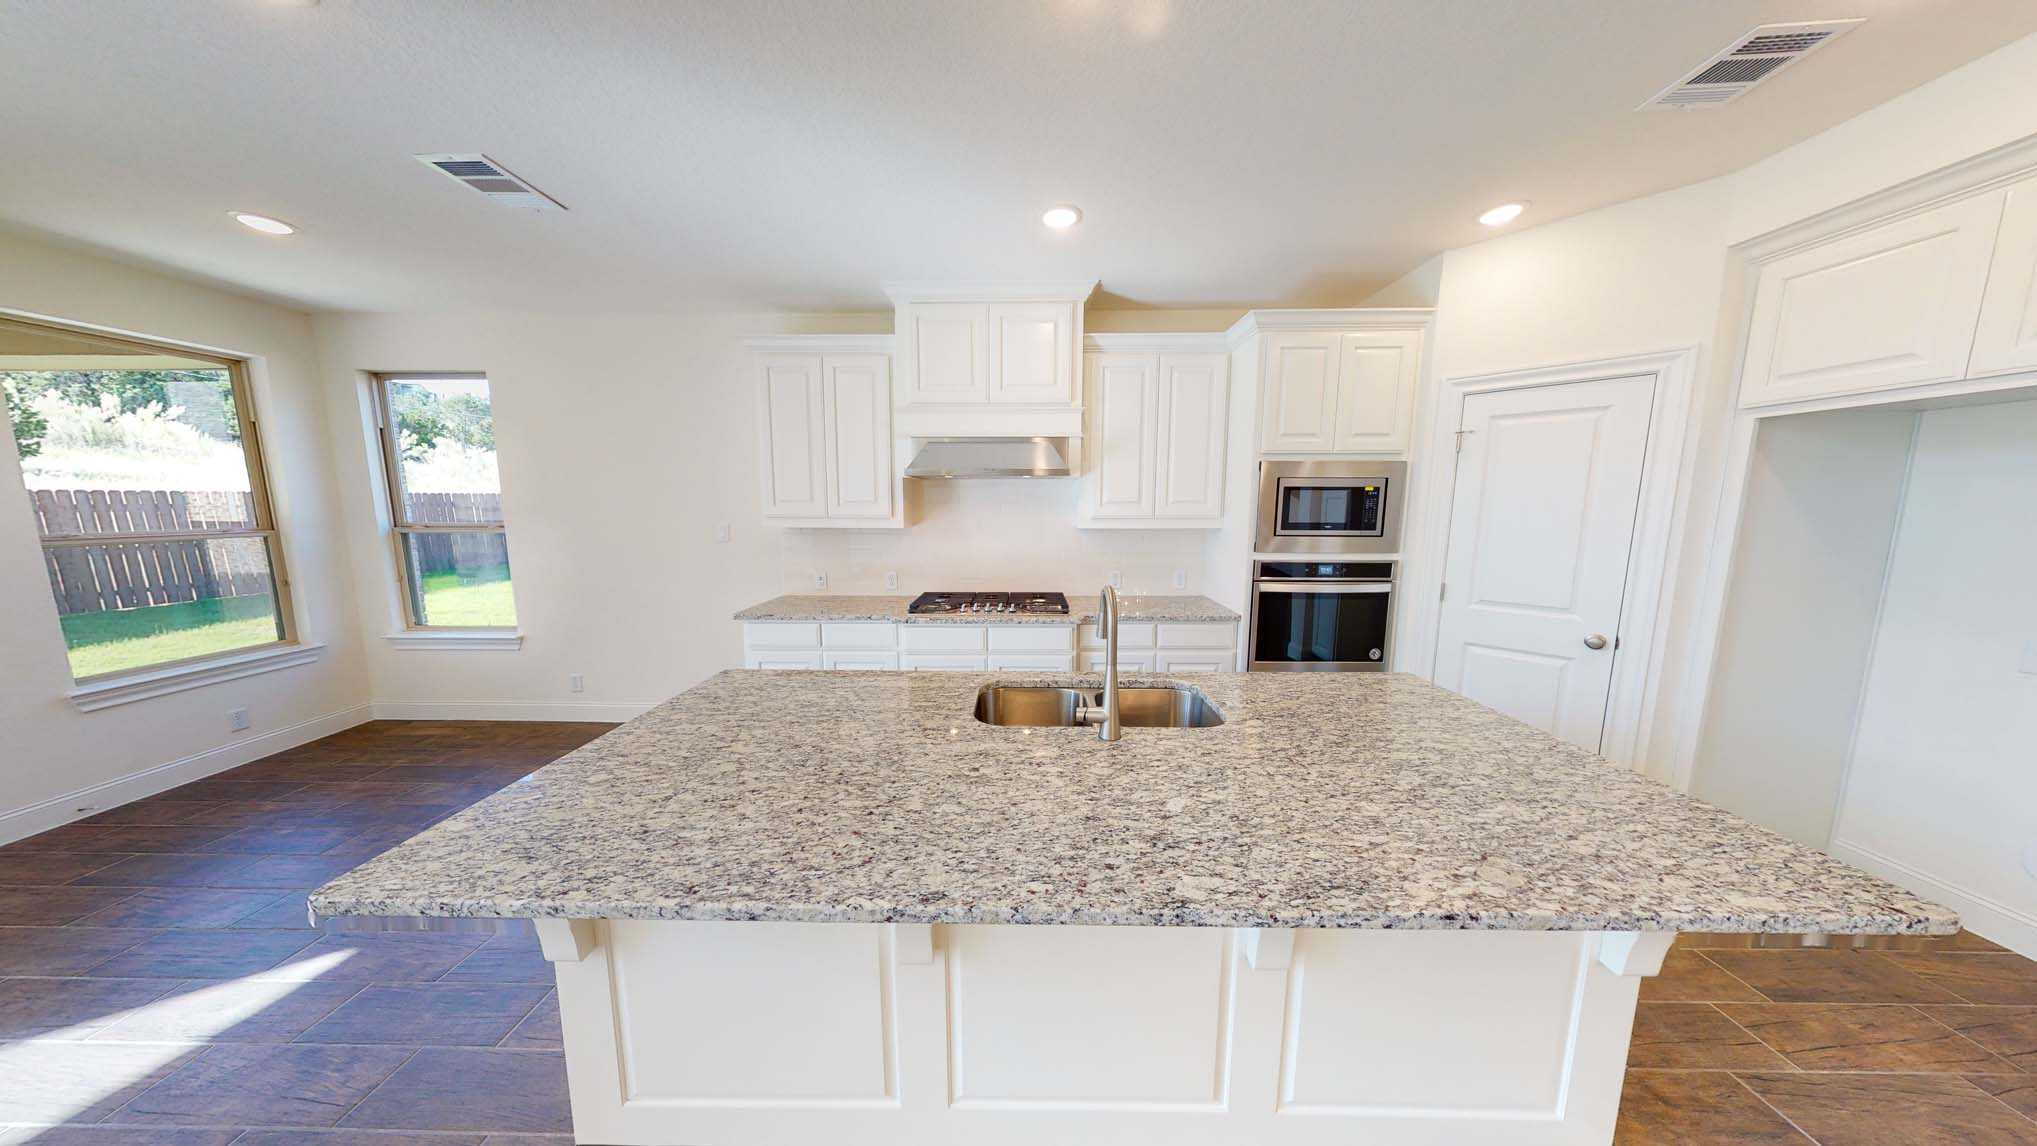 Kitchen featured in the Plan 559H By Highland Homes in San Antonio, TX